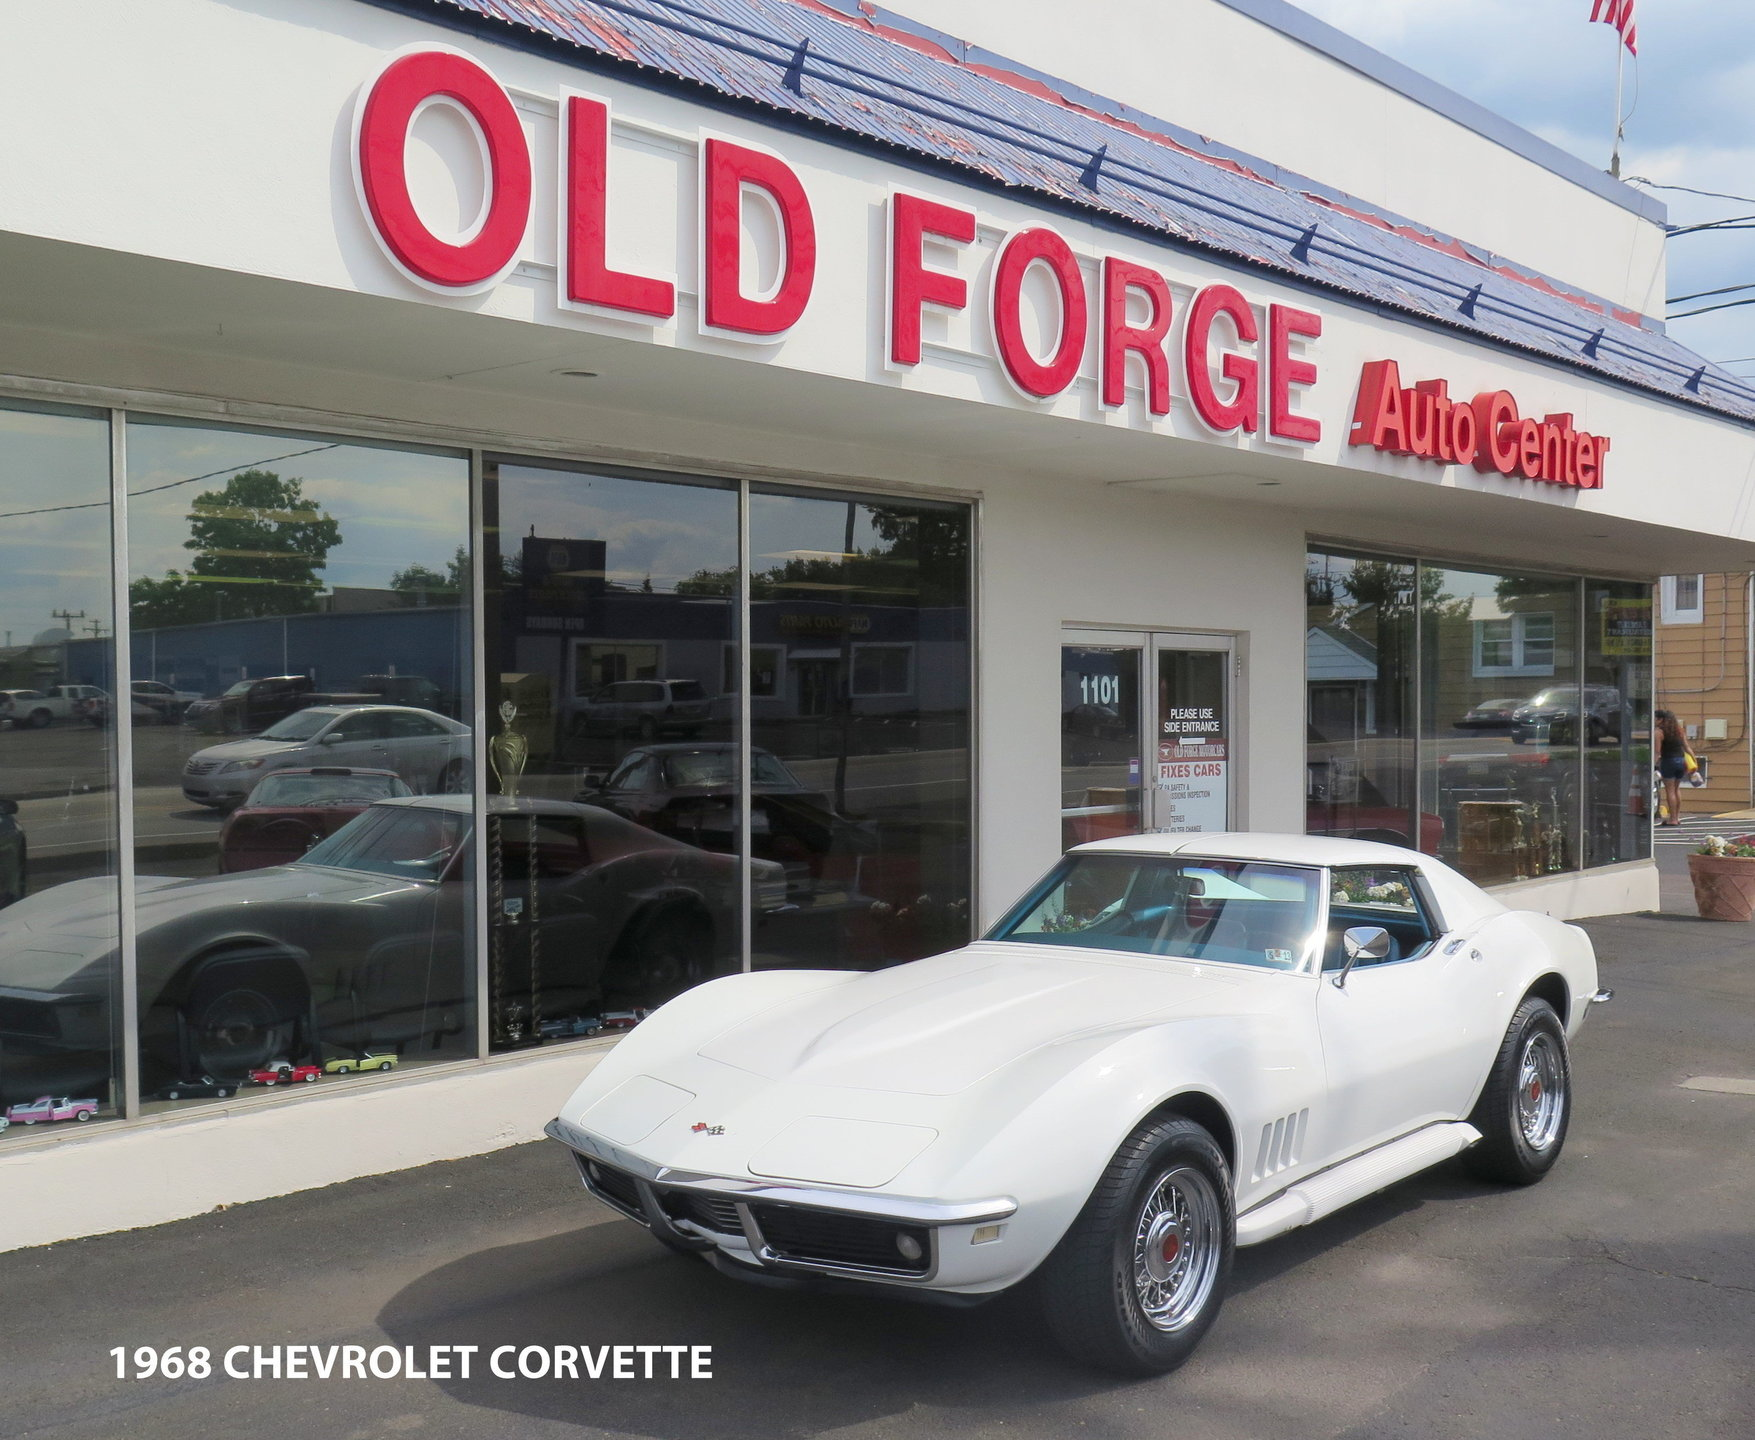 232800c7225f0 hd 1968 chevrolet corvette